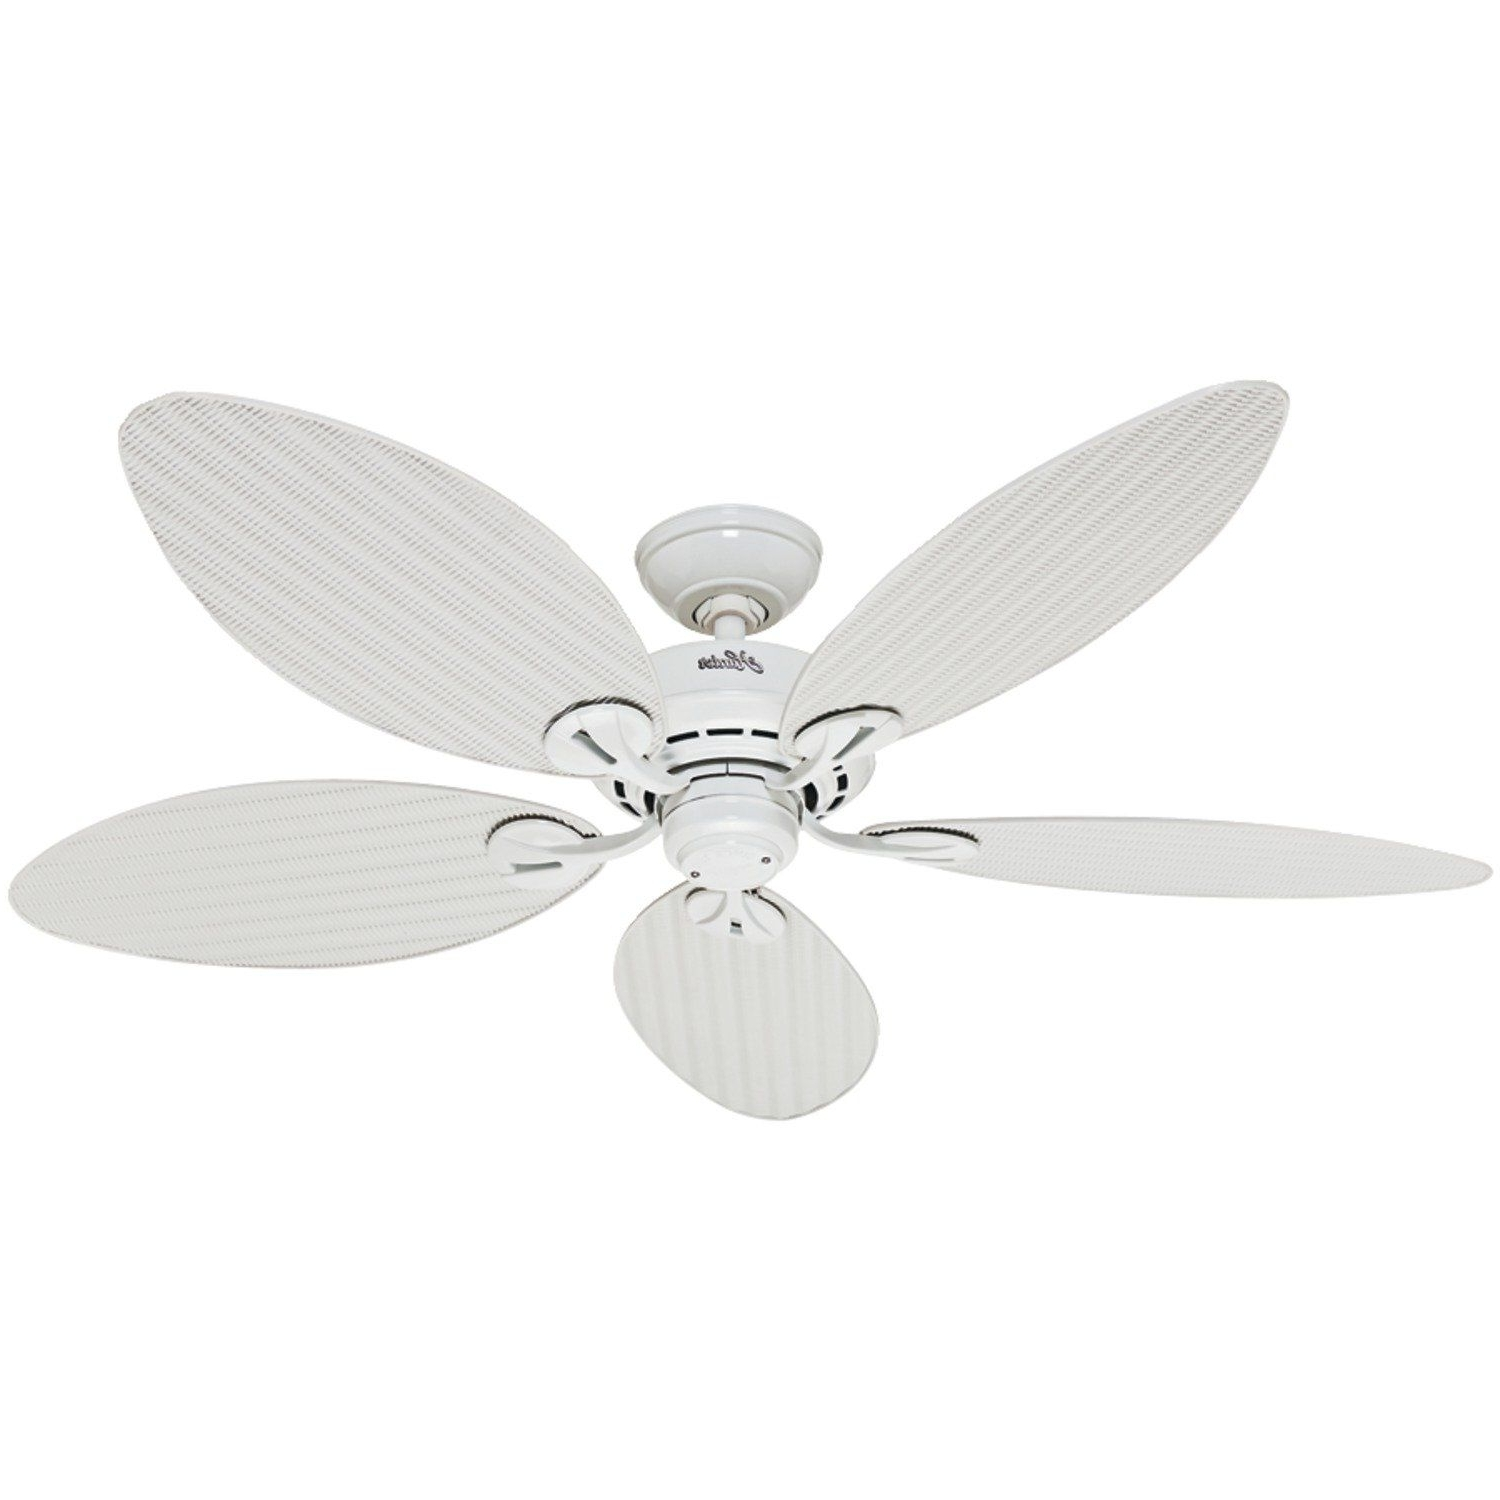 Famous Outdoor Ceiling Fans With Plastic Blades Pertaining To Hunter Fan Company 54097 Bayview 54 Inch Etl Damp Listed Ceiling Fan (View 6 of 20)